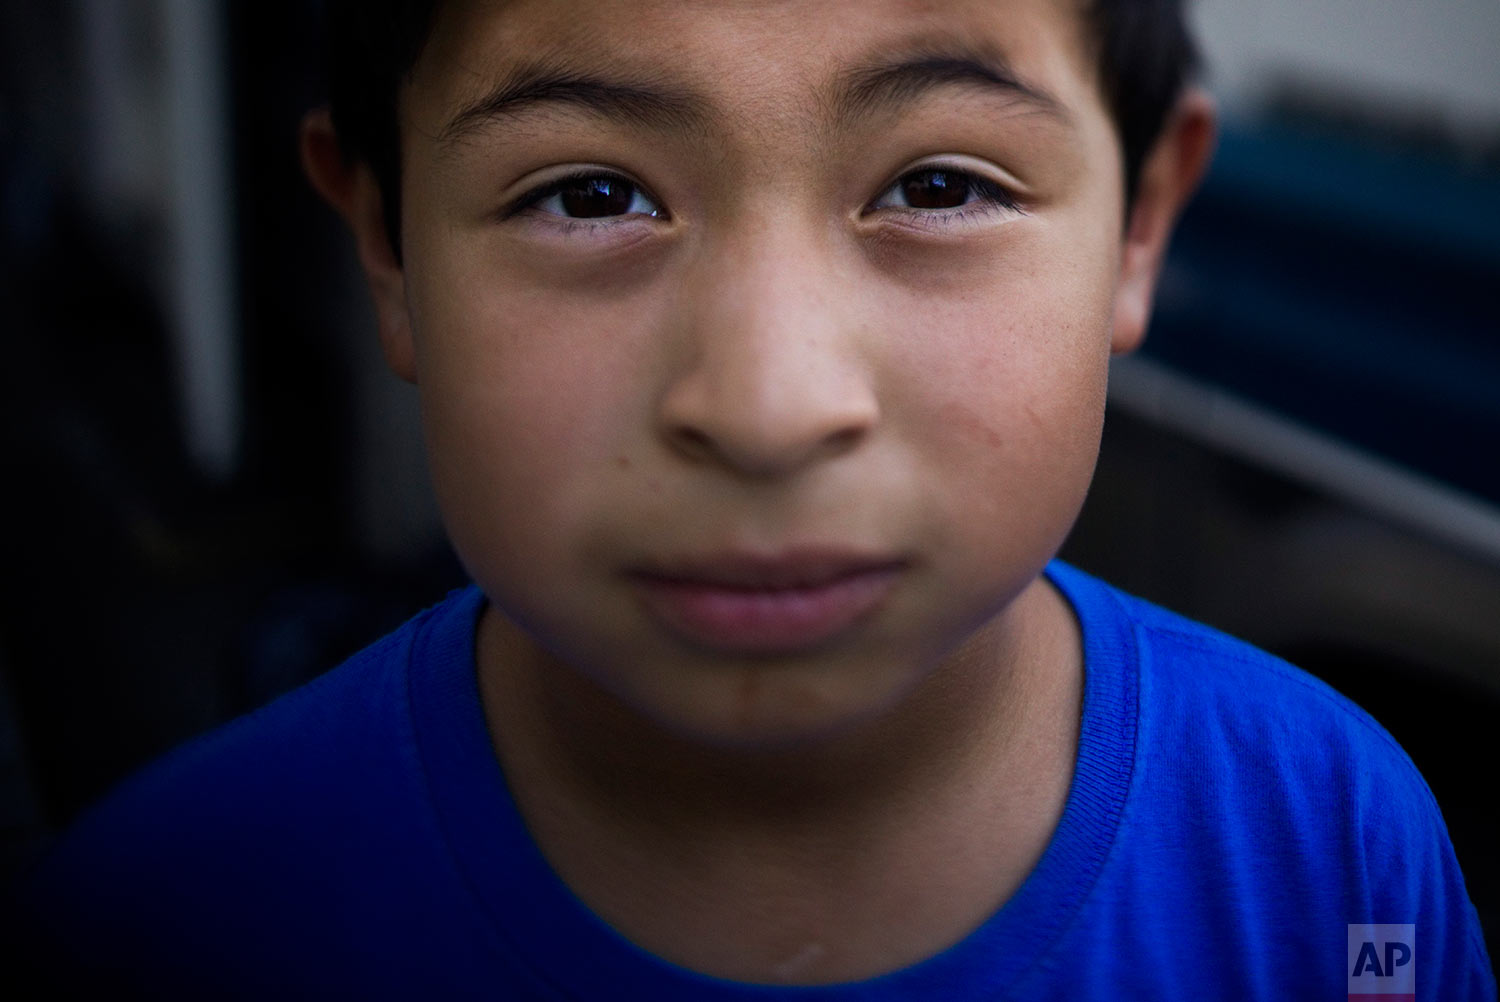 John Ruiz, 9, pauses for photos in front of his RV he and his family live in Monday, Oct. 23, 2017, in Mountain View, Calif. Ruiz lives in an RV with his parents and four siblings after they could no longer afford the rent. Ruiz said he wants to make a lot of money and spend it with his family. (AP Photo/Jae C. Hong)